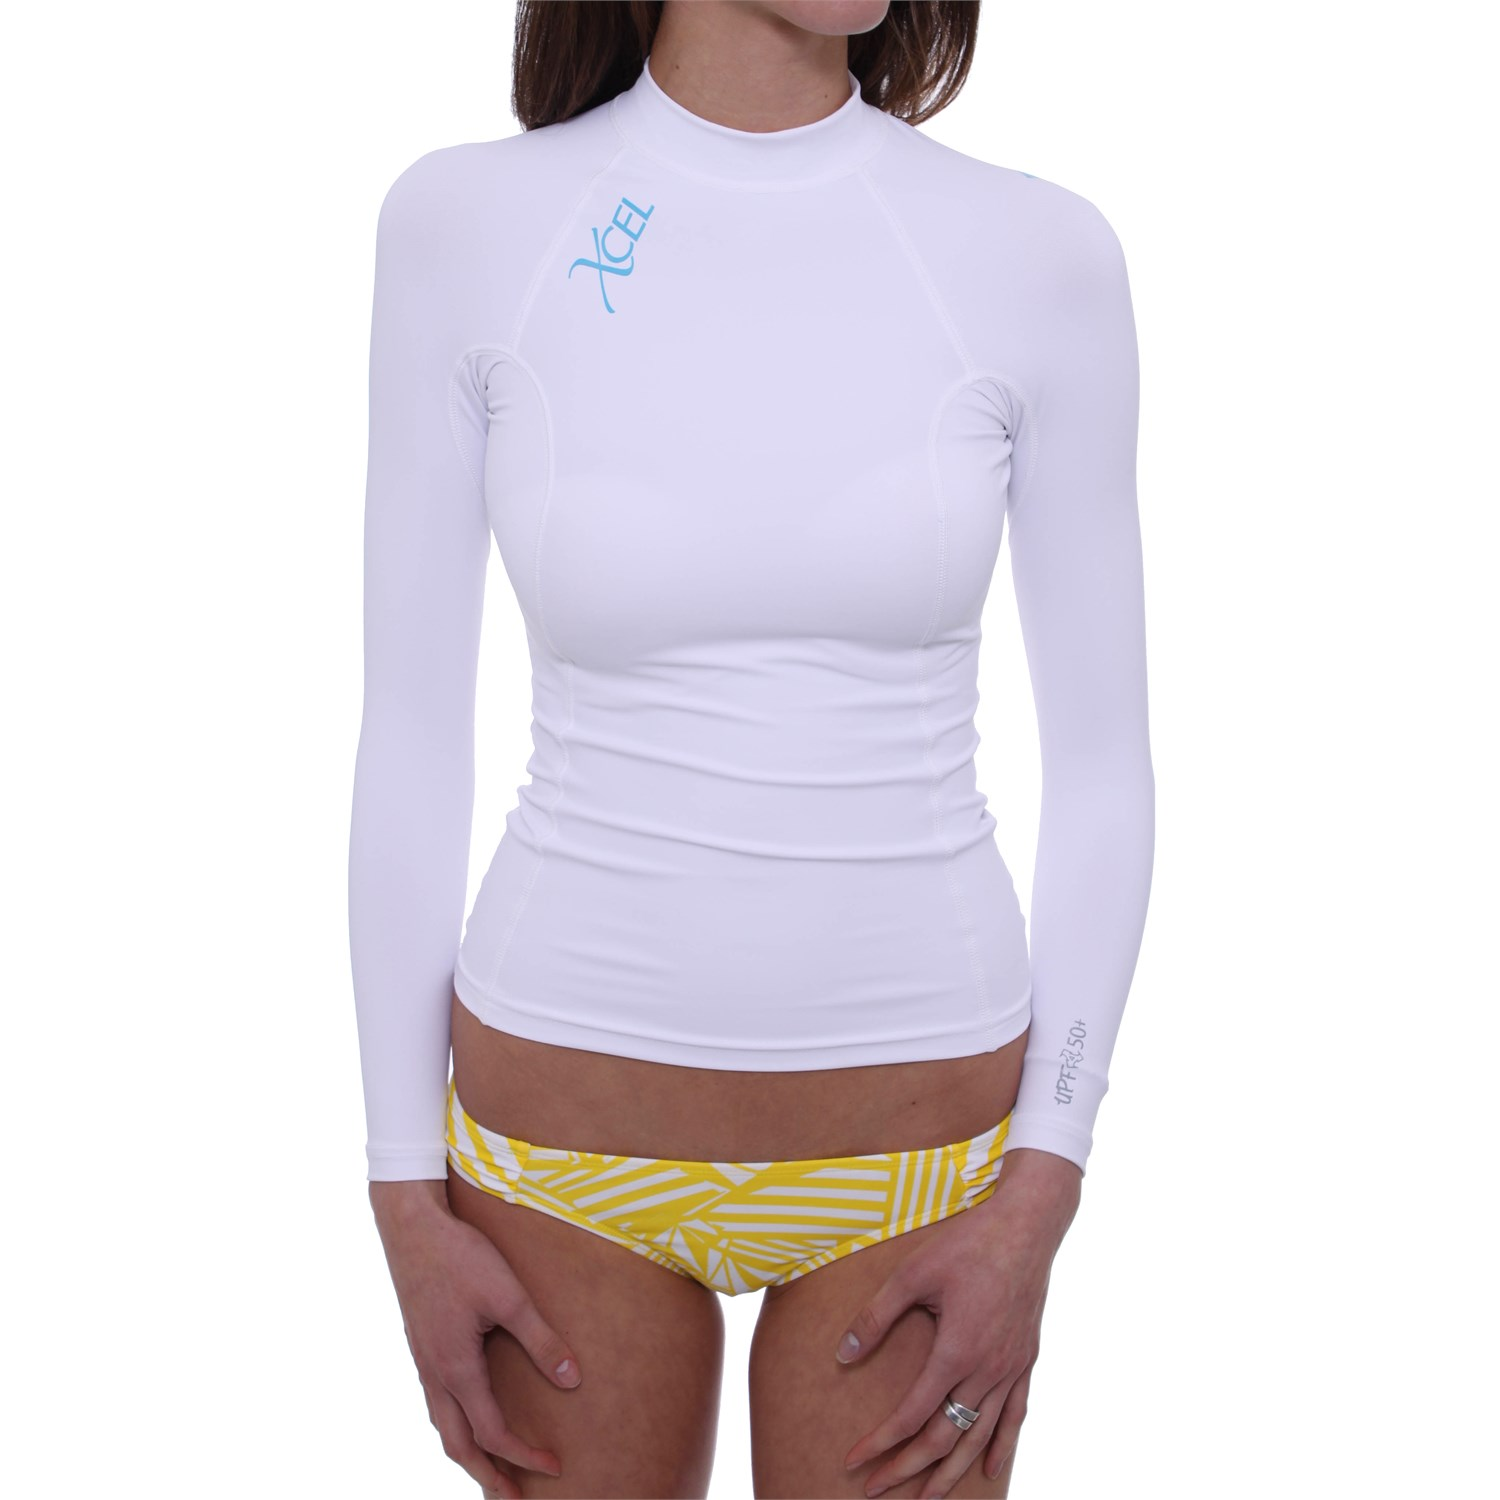 What is a Rash Guard? The Perfect Extra Layer of Sun Protection. Maybe you've seen a rash guard in store or online and asked yourself 'what is a rash guard?' Well, this summer, protect yourself from the sun and sand with a rash guard.